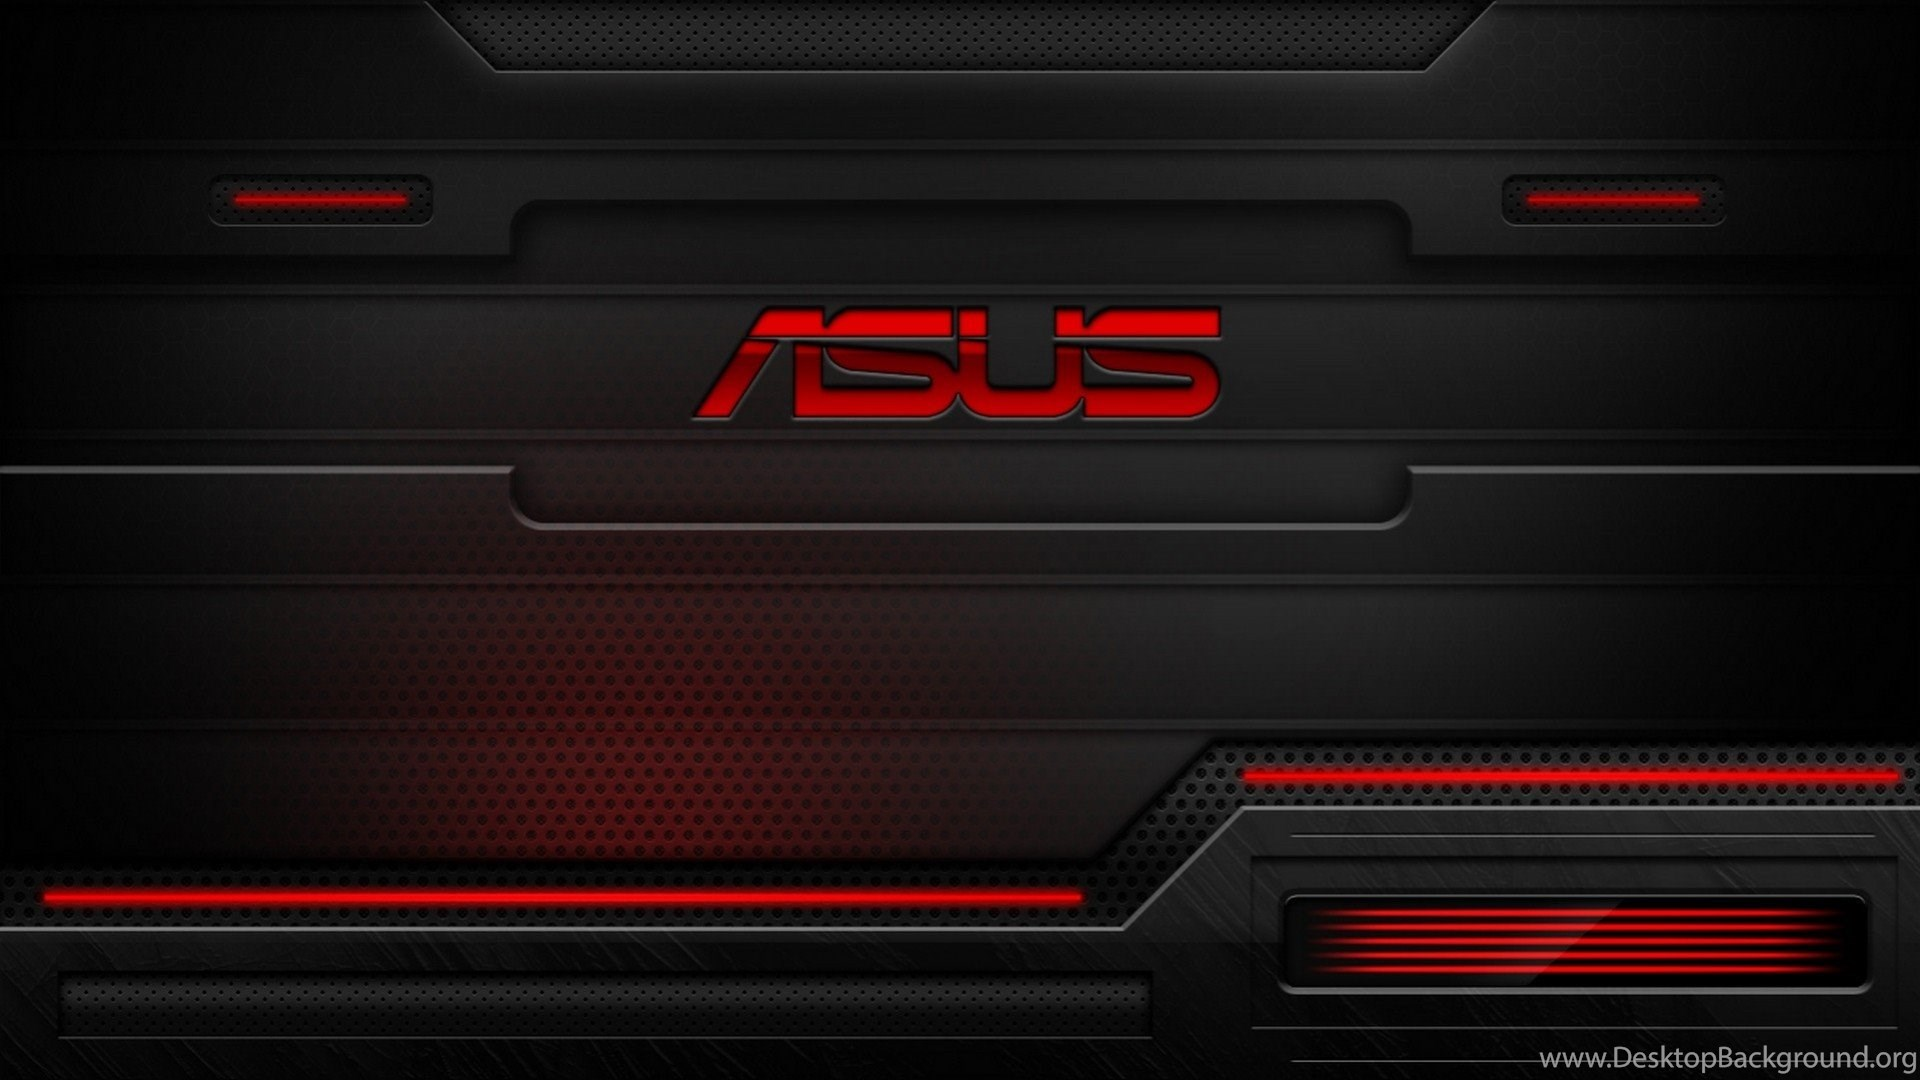 asus red tecnology wallpaper - photo #1